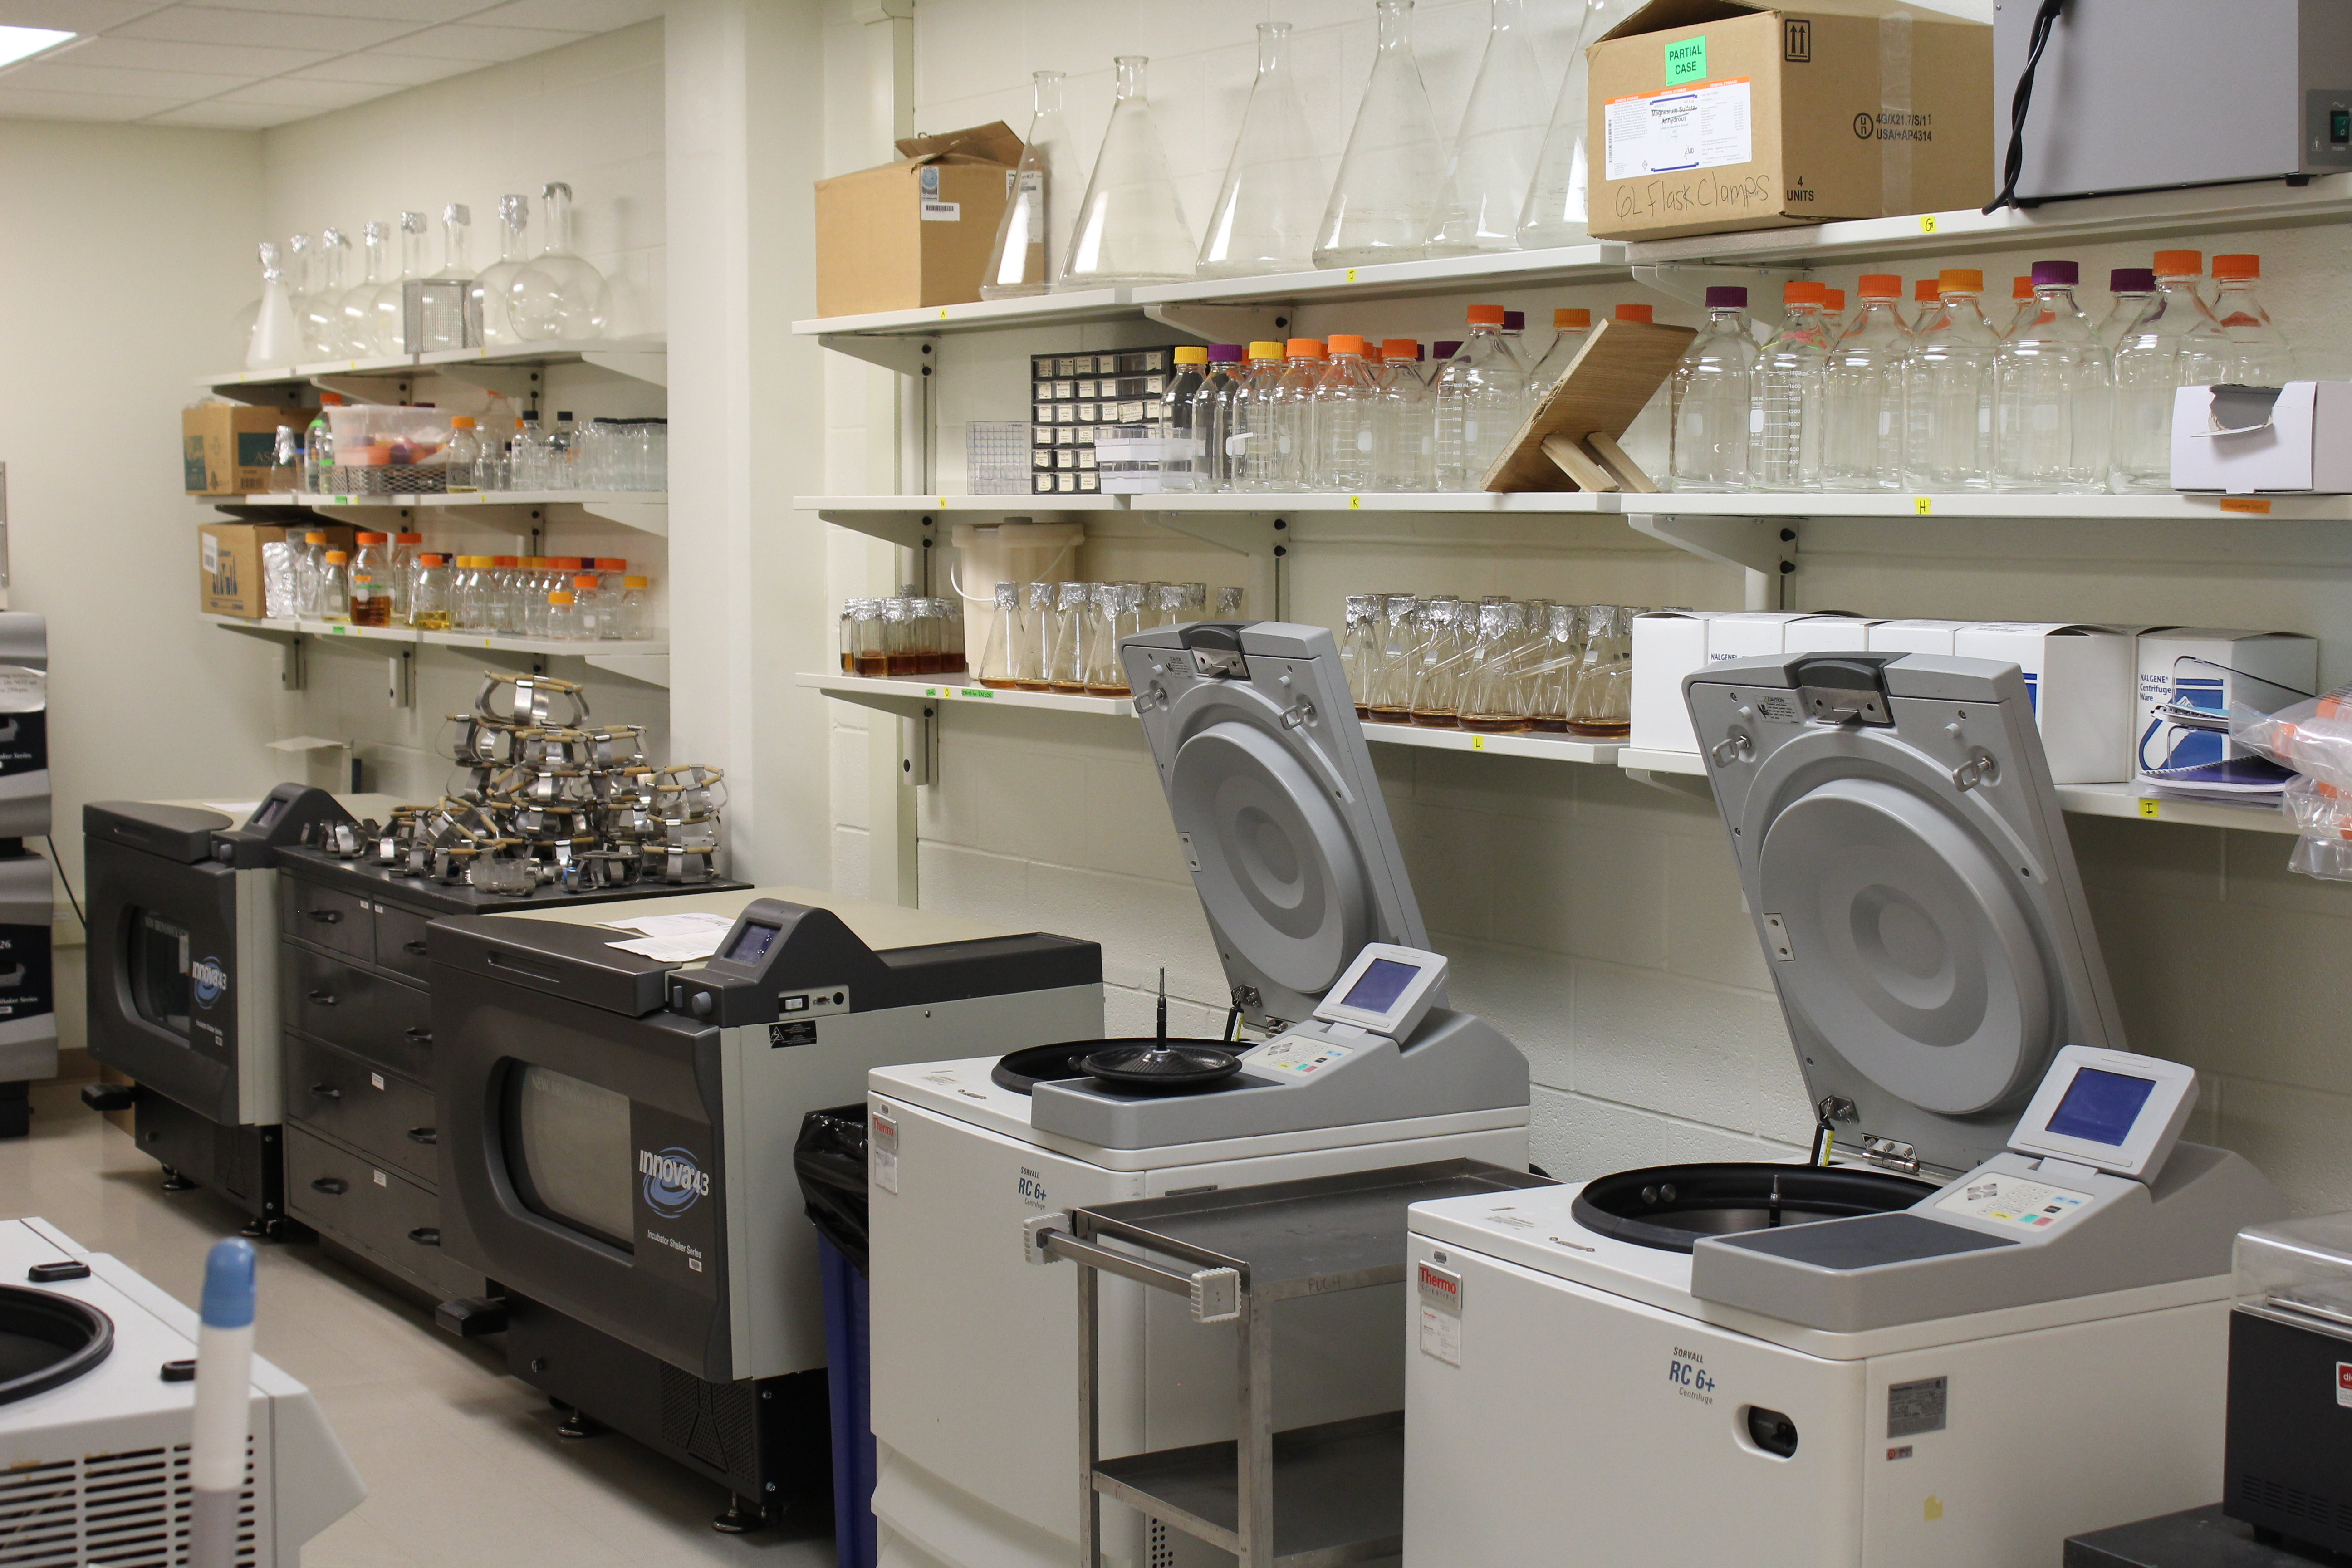 Lab Equipment 2